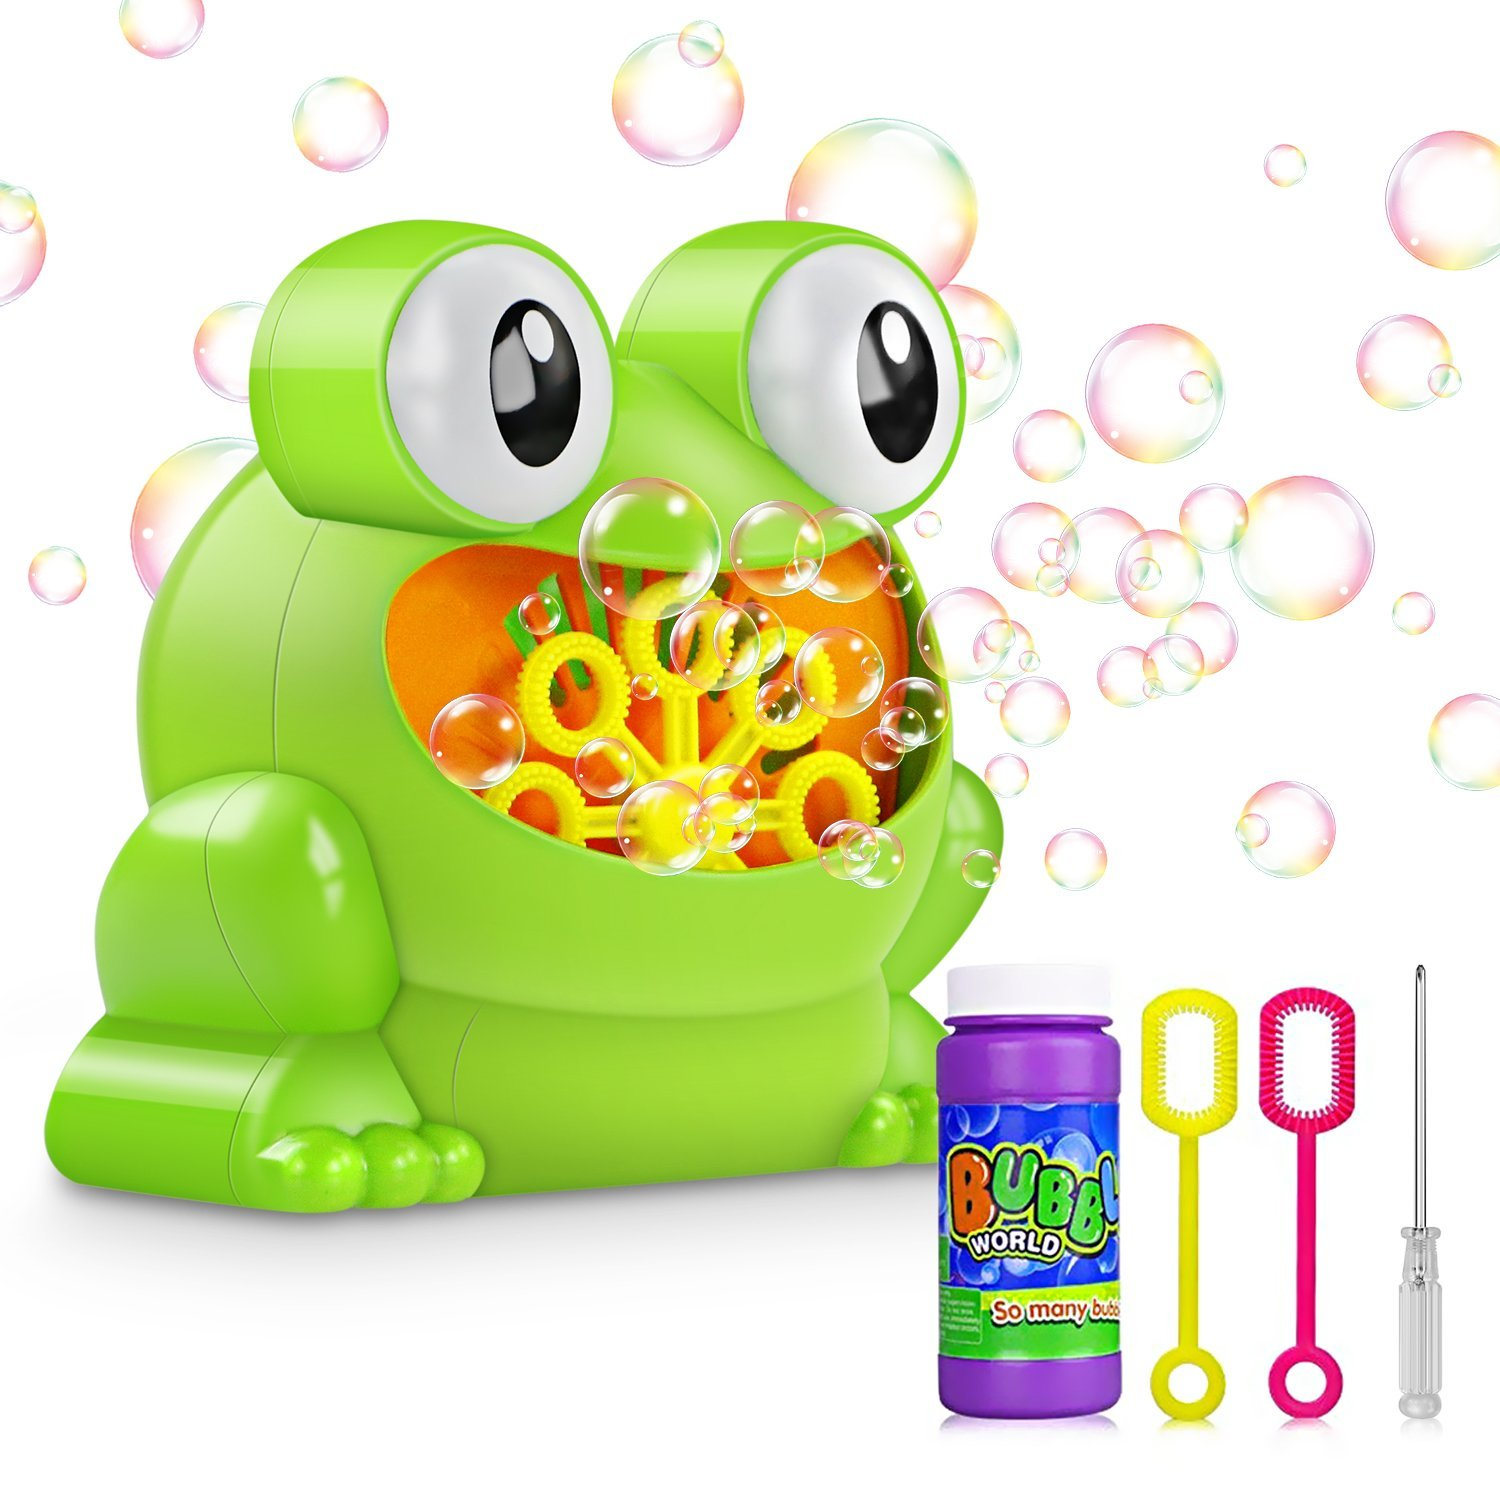 Tencoz Bubble Machine, Kids Automatic Durable Bubble Maker Blower with 1 Nontoxic Bubble Solution 2 Bubble Wands for Park Wedding Indoor and Outdoor Party Christmas Birthday Gift(Frog)